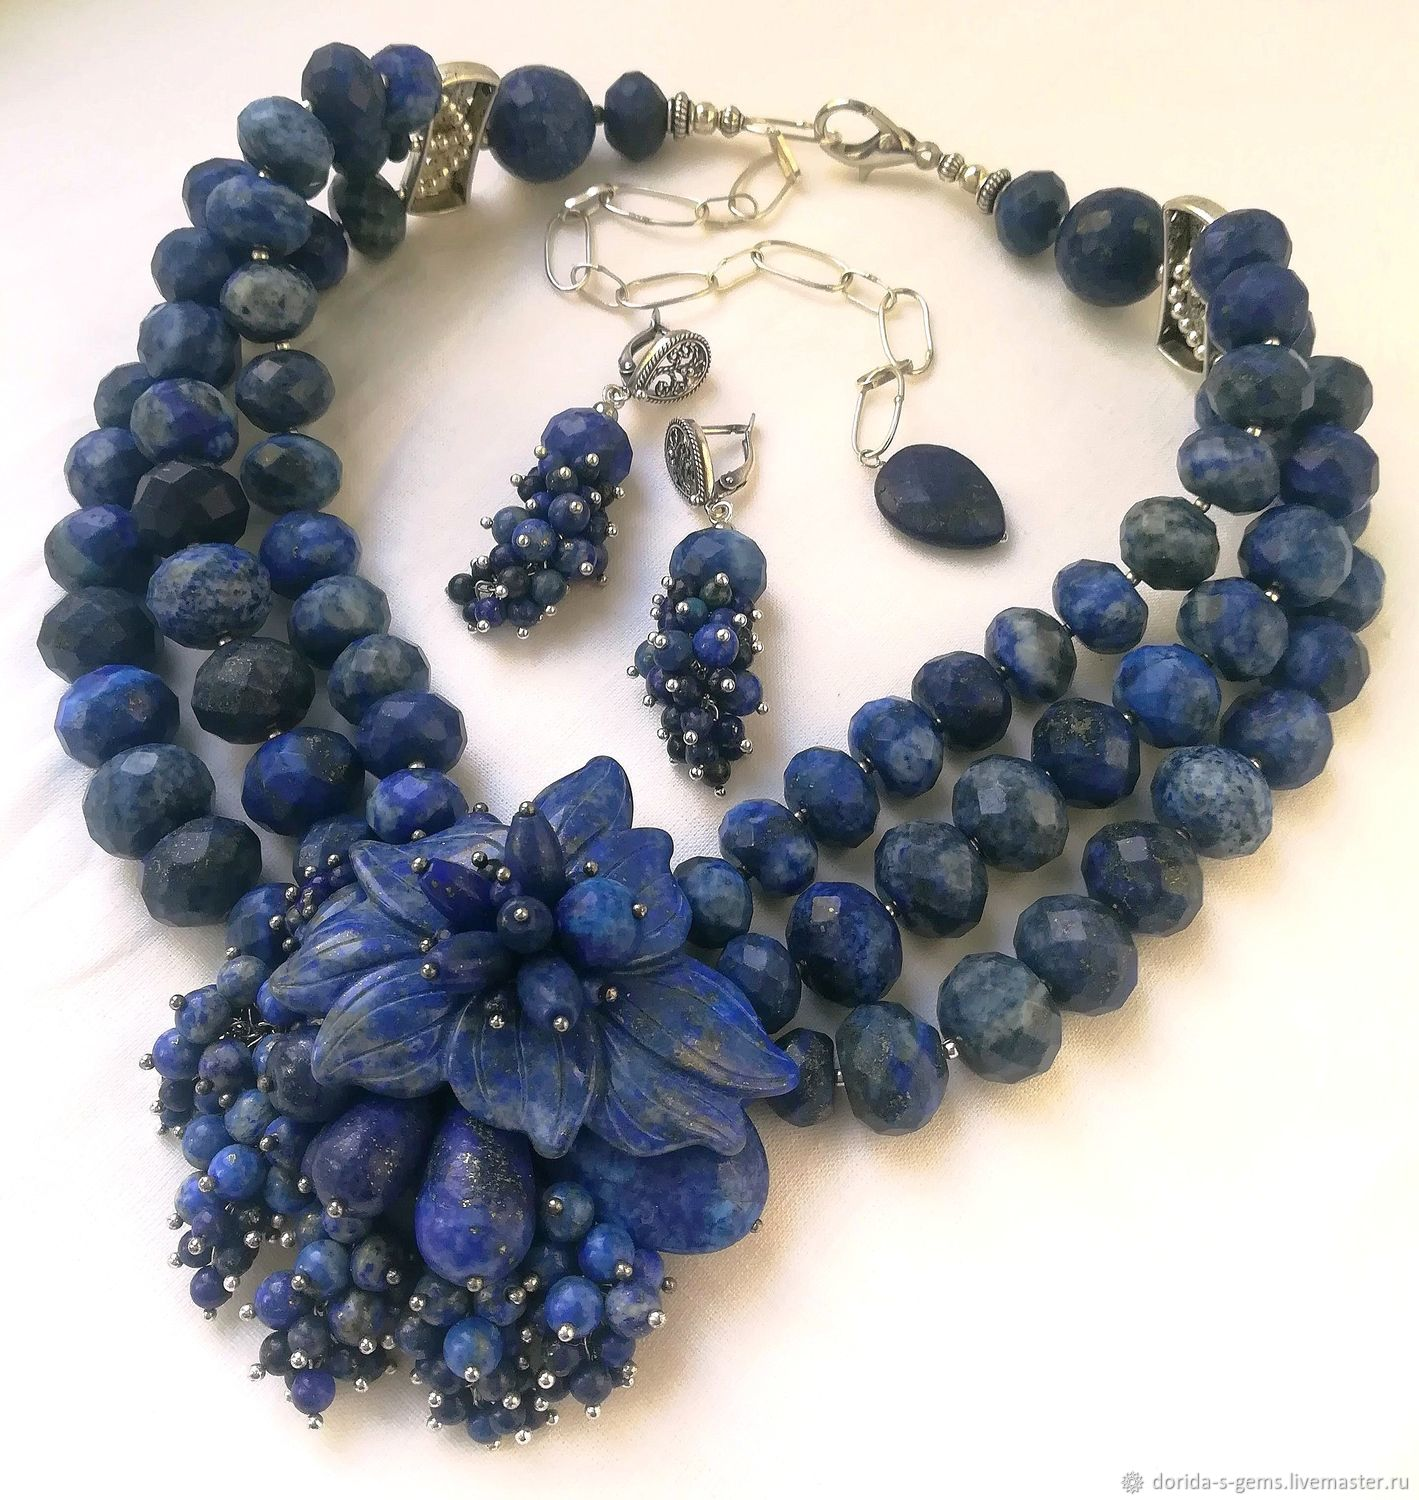 necklace, designer necklace, necklace for every day necklace out, the necklace made of lapis lazuli, lapis lazuli necklace, elegant necklace, necklace for gift, beads of lapis lazuli, beads of stones